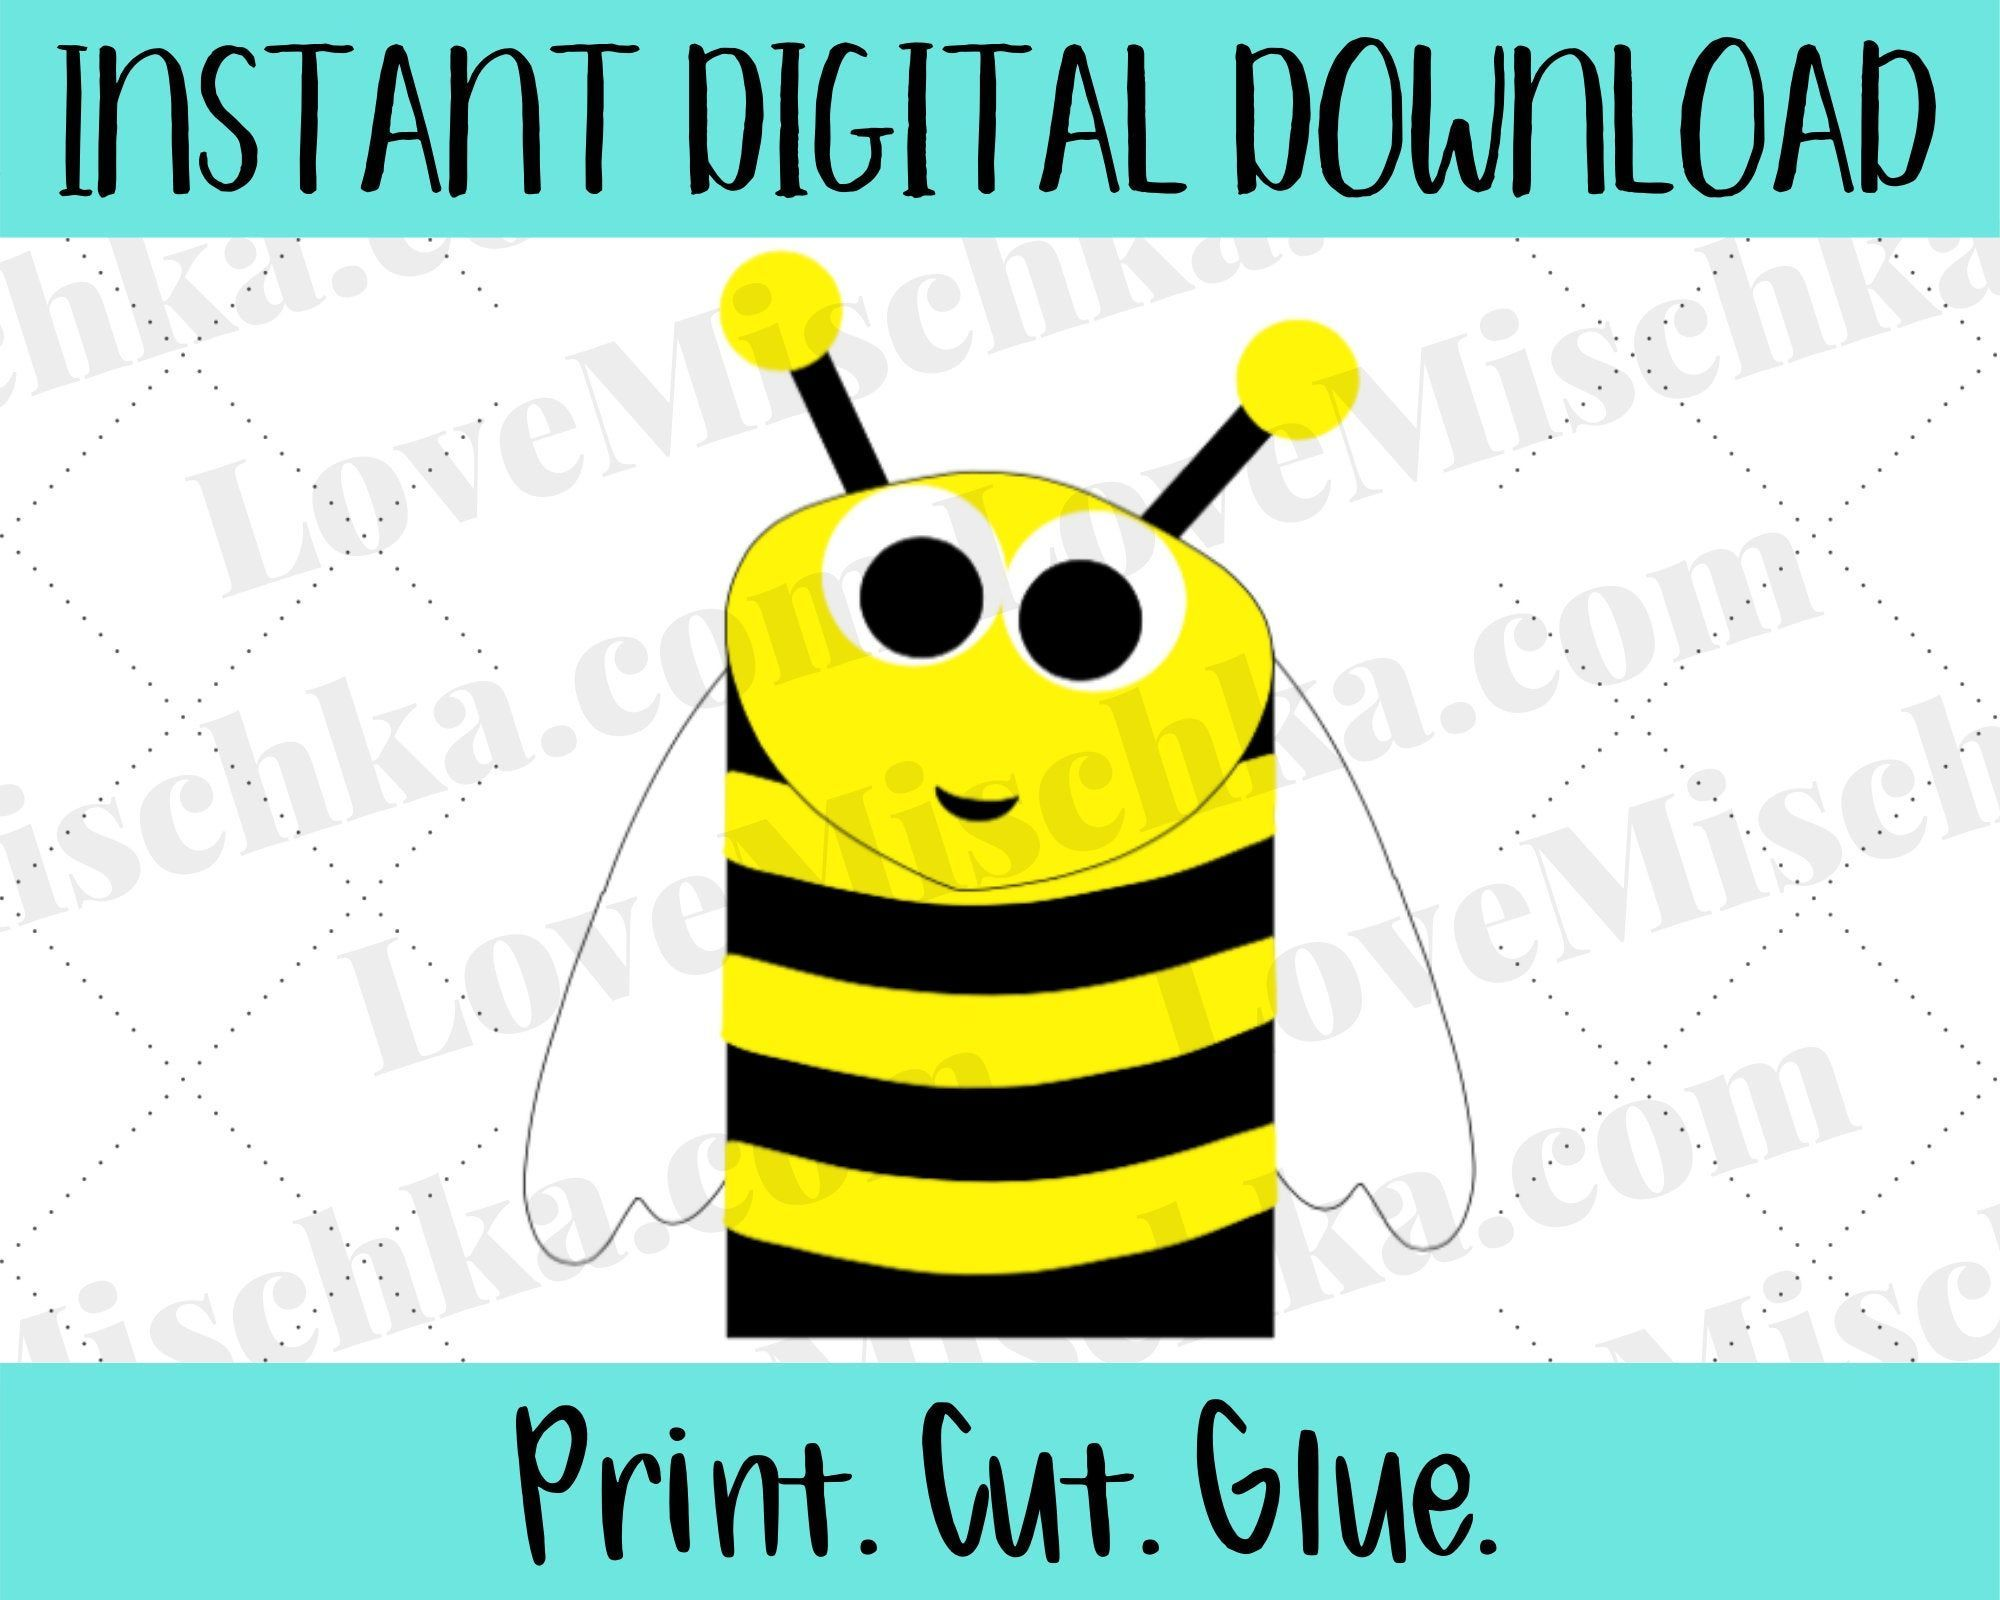 Bee Goodie Bag / Party Favor Gift Bags / Printable / Instant Download / Digital Download / DIY Party / Birthday / Baby Shower / Bee,  #Baby #Bag #Bags #Bee #Birthday #digital #DIY #Download #Favor #Gift #Goodie #Instant #Party #Printable #Shower,  #DiyAbschnitt, Diy Abschnitt,